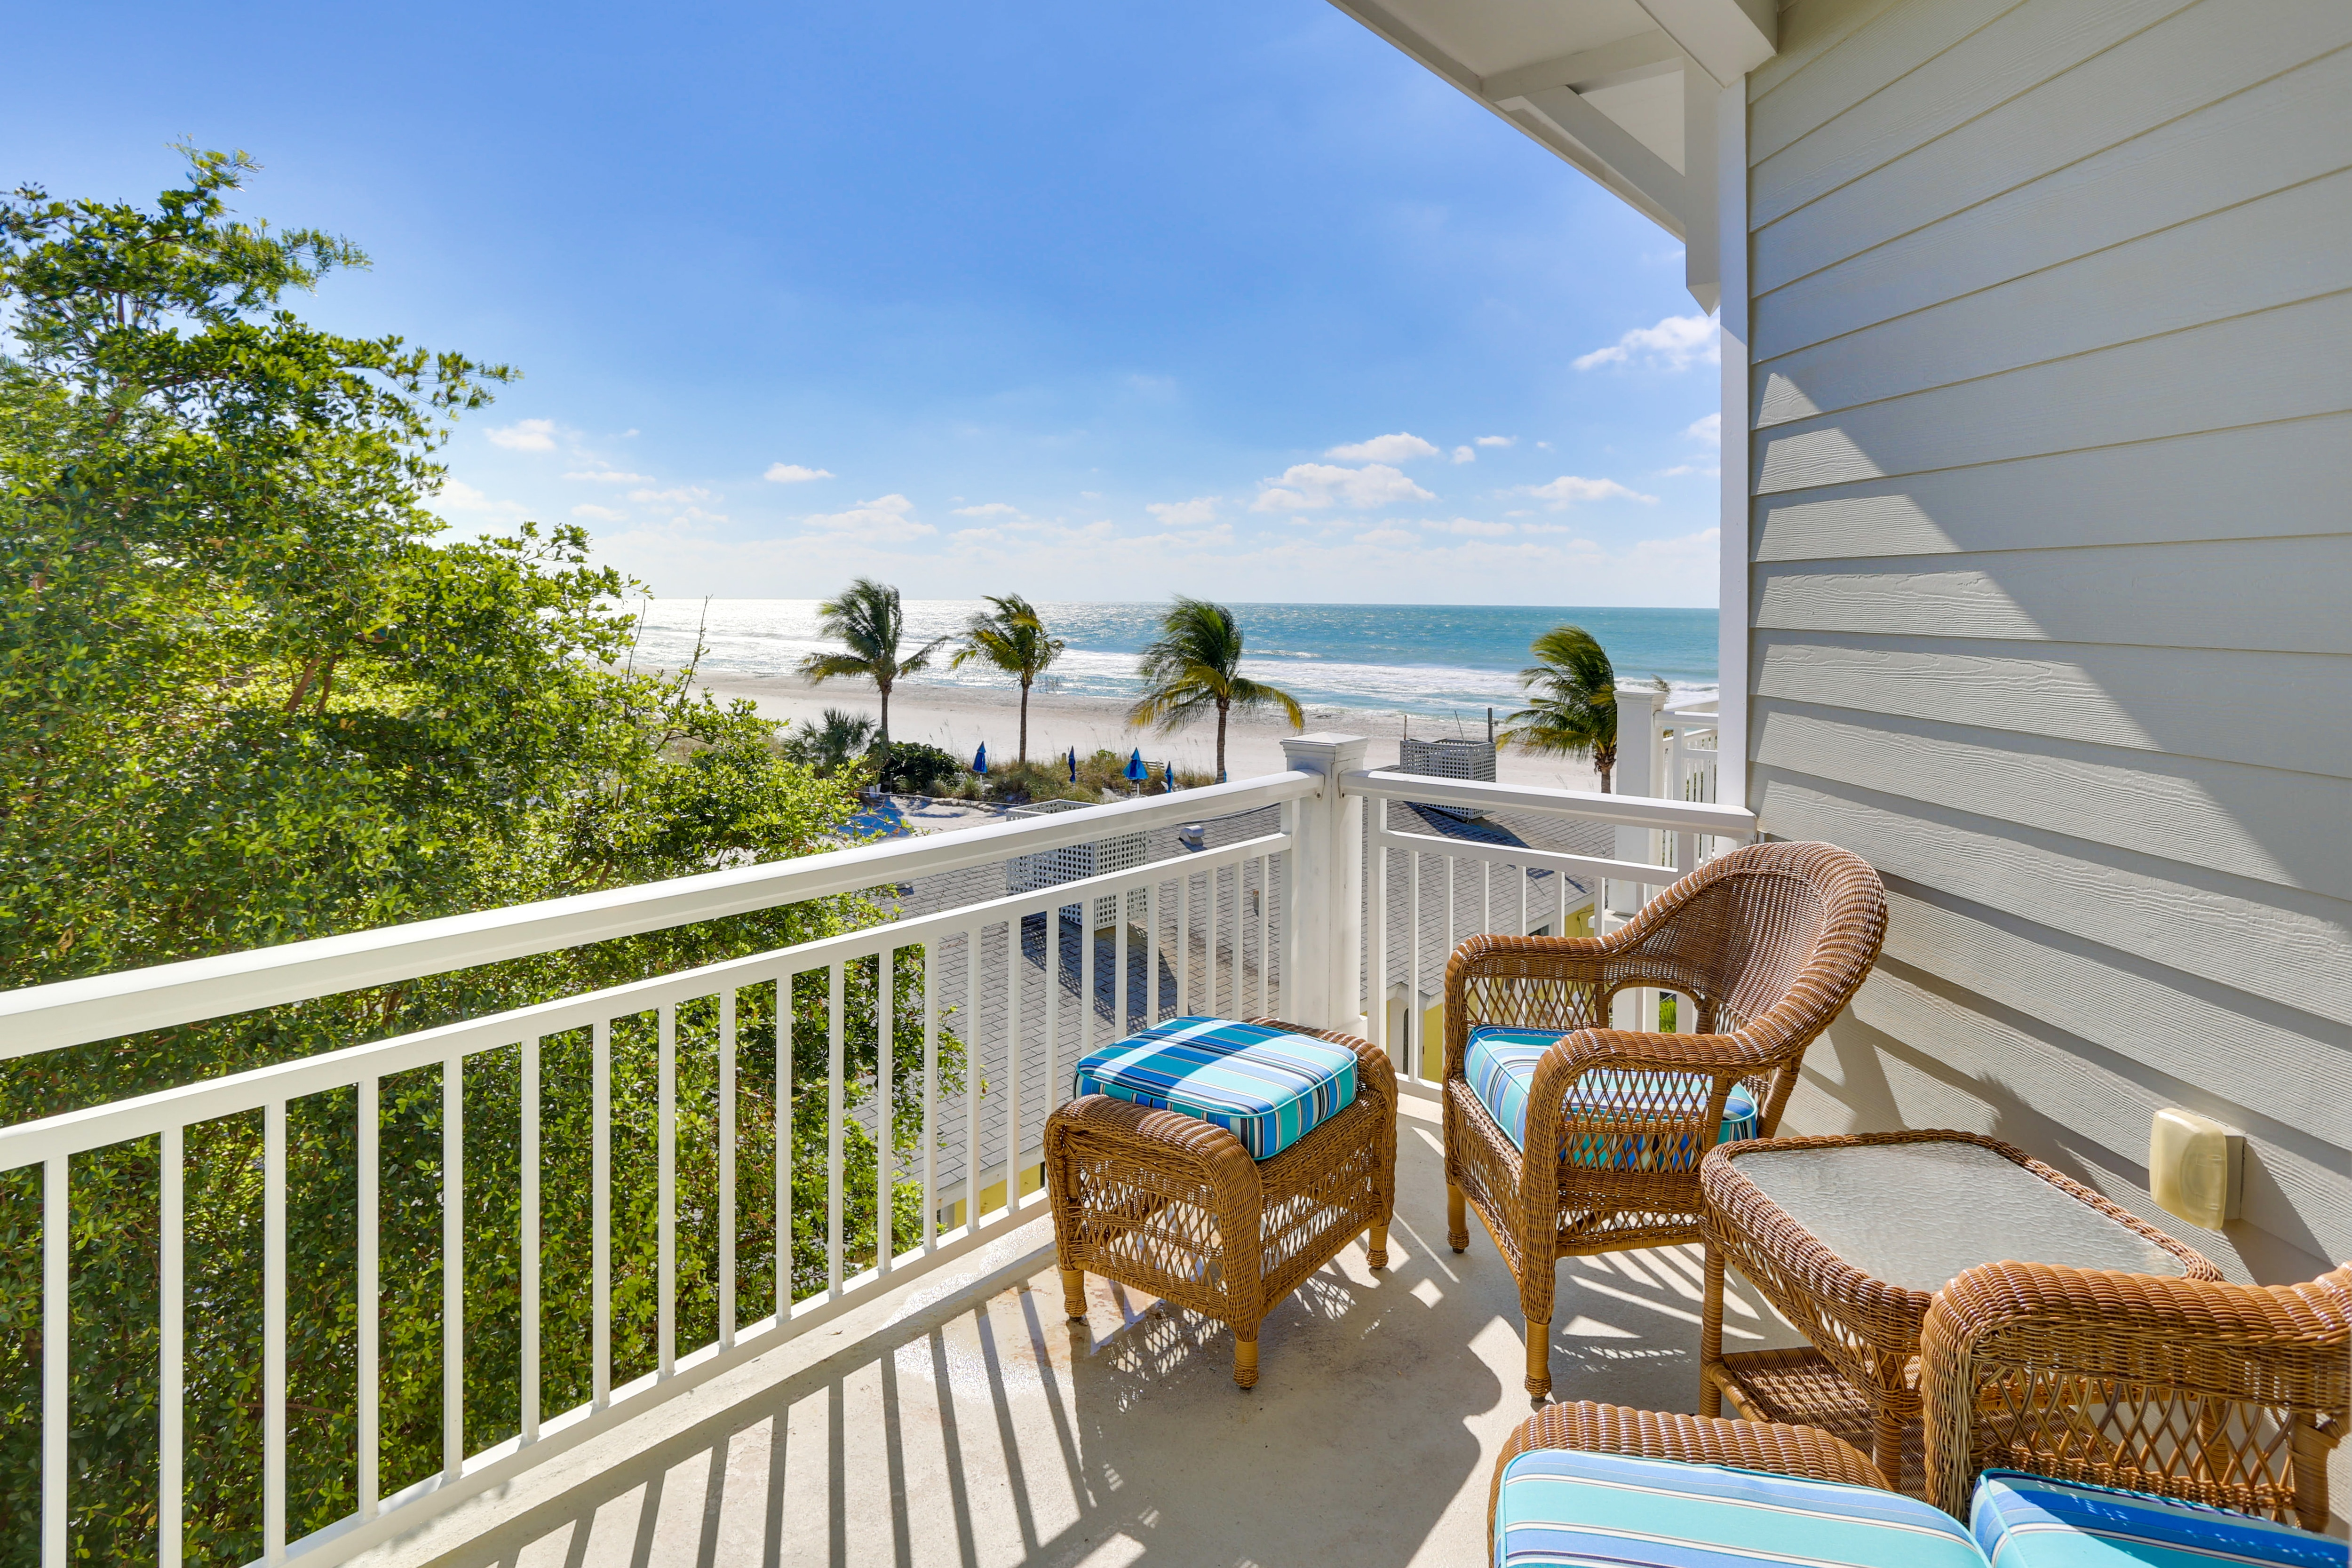 Property Image 1 - Delightful Beach Condo with Coastal Inspired Interiors